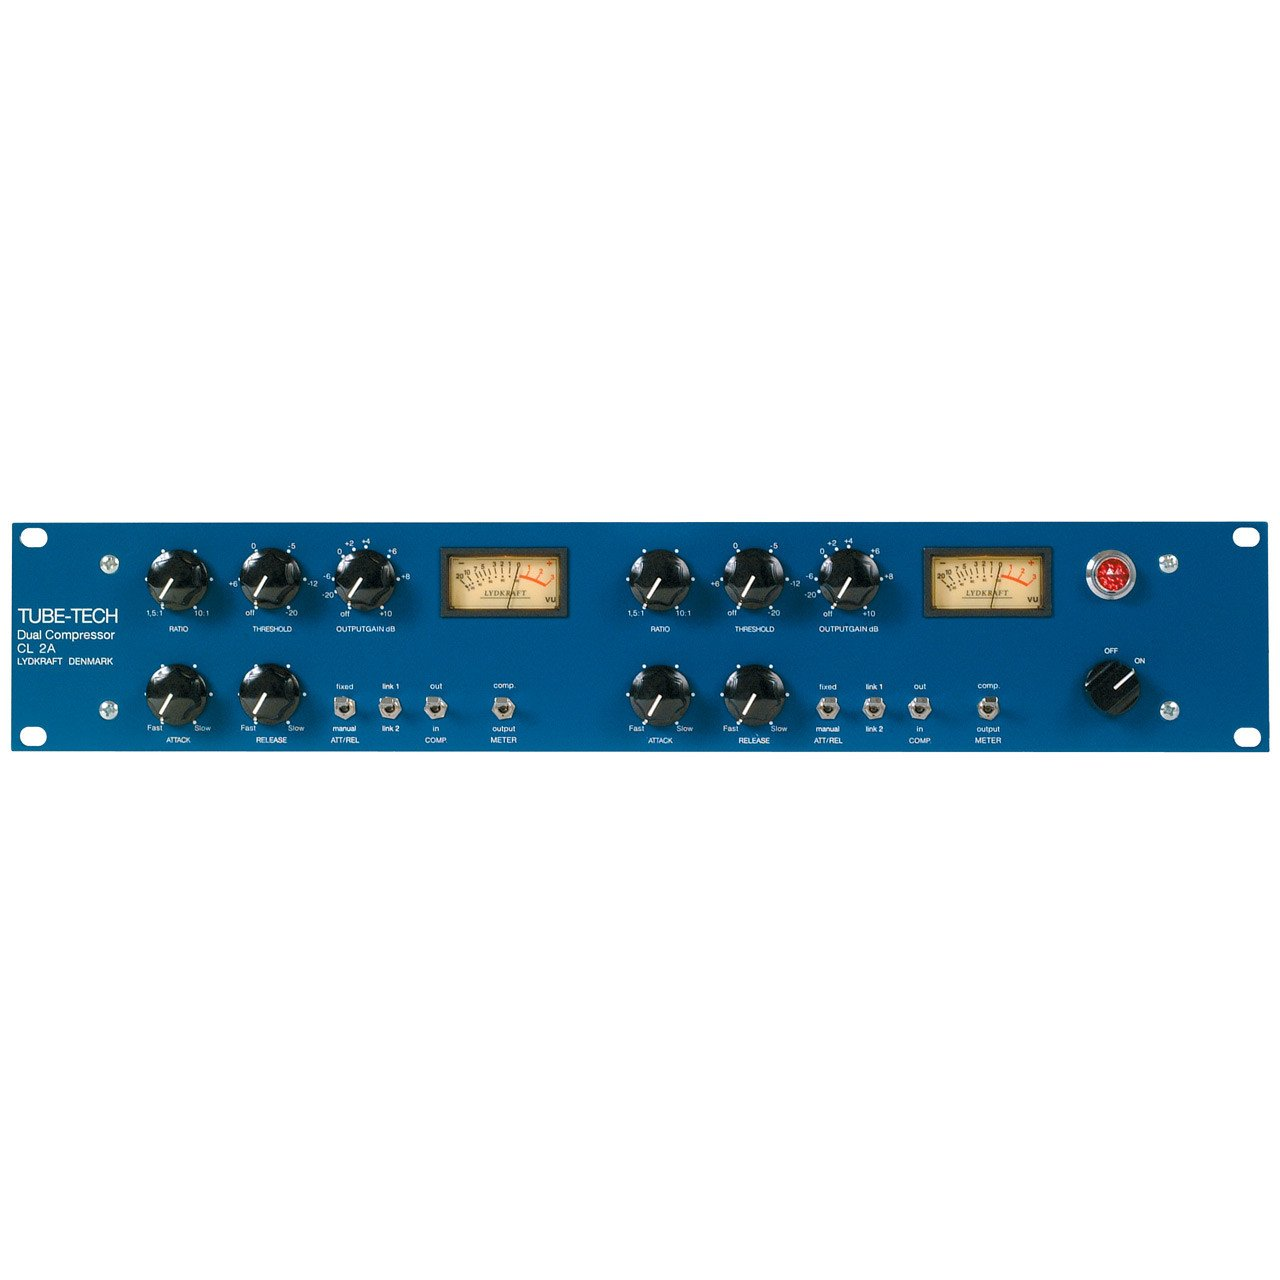 Compressors/Limiters - TUBE-TECH CL2A All-tube Dual Optical Compressor